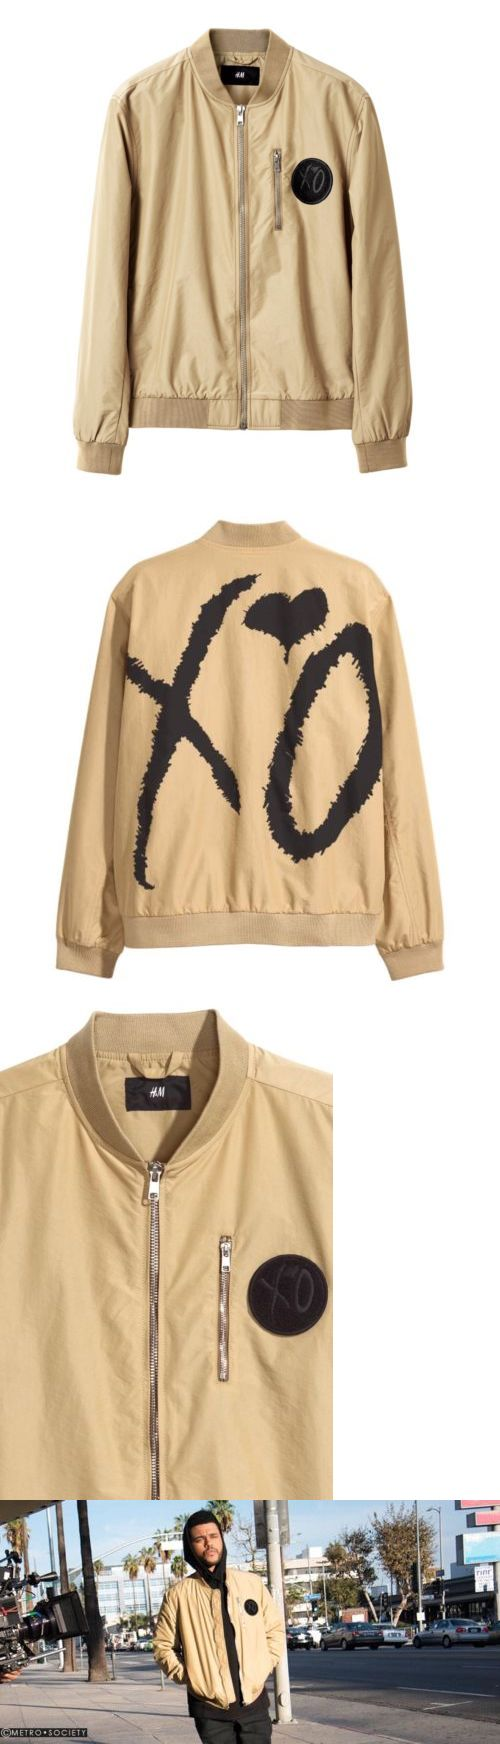 Outerwear 155195: The Weeknd Handm Bomber Jacket -> BUY IT NOW ONLY: $100 on eBay!